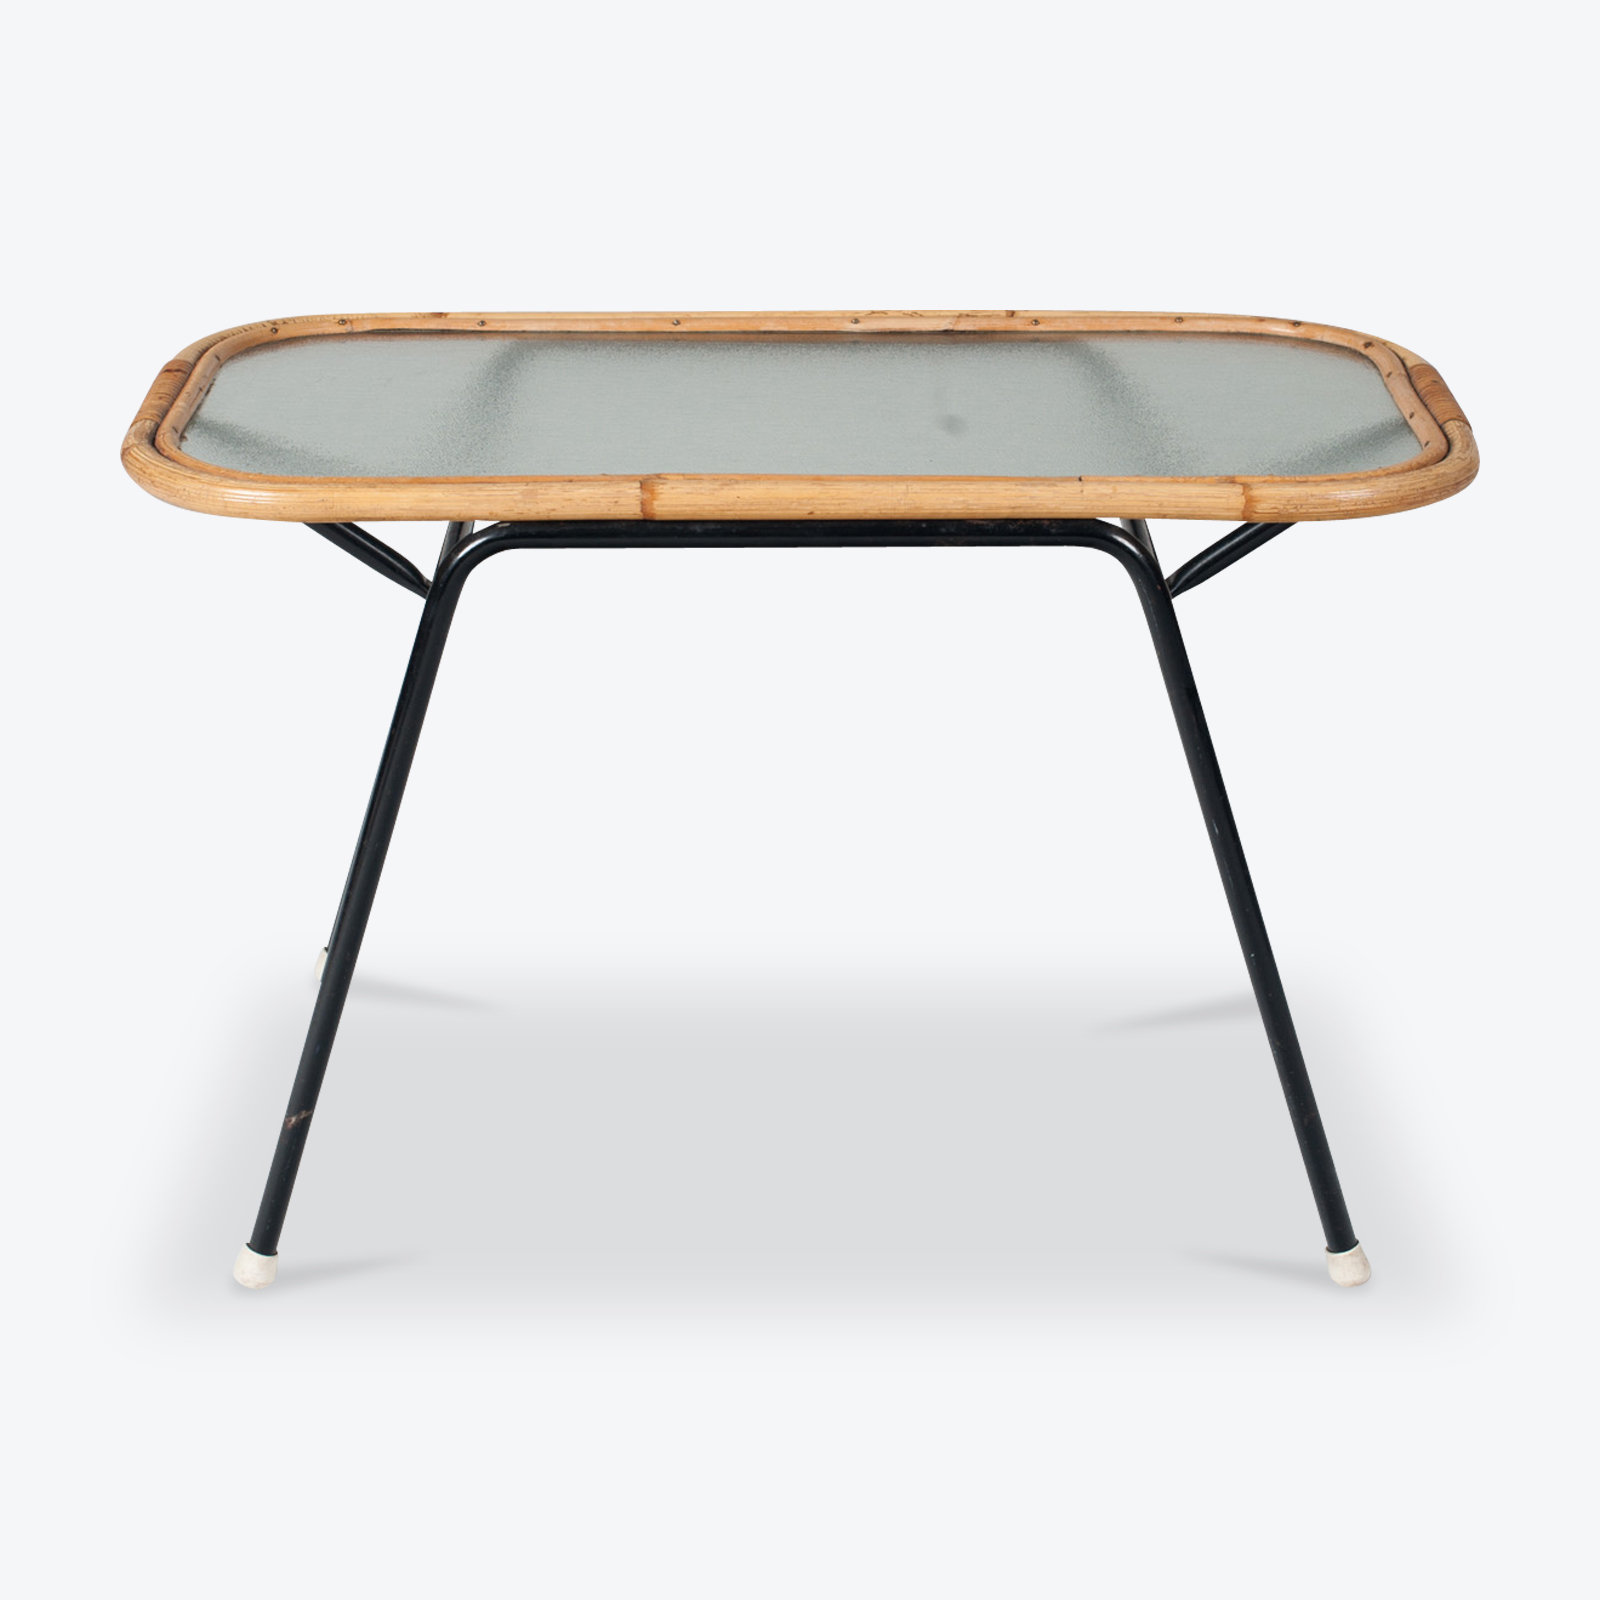 Rectangular Coffee Table By Rohe Noordwolde 1950s Netherlands 01